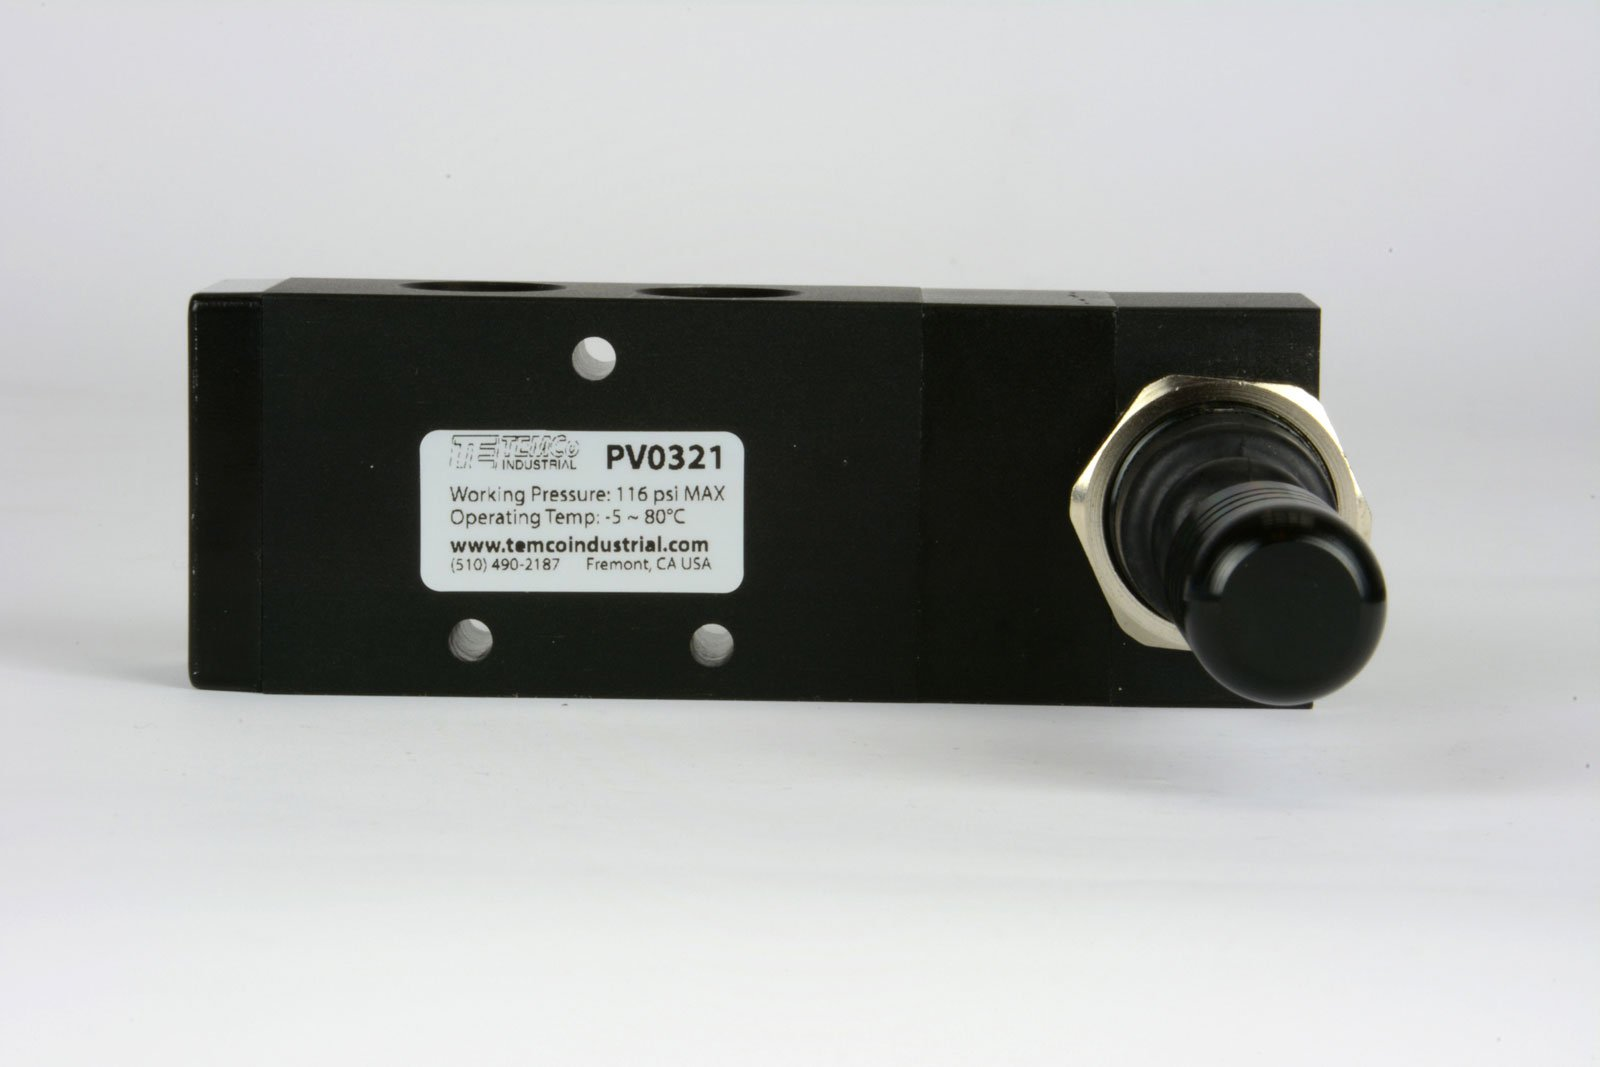 Spring Return Lever Pneumatic Air Control Valve 5 Port 4 Way 3 Position 3/8'' NPT by Temco (Image #2)